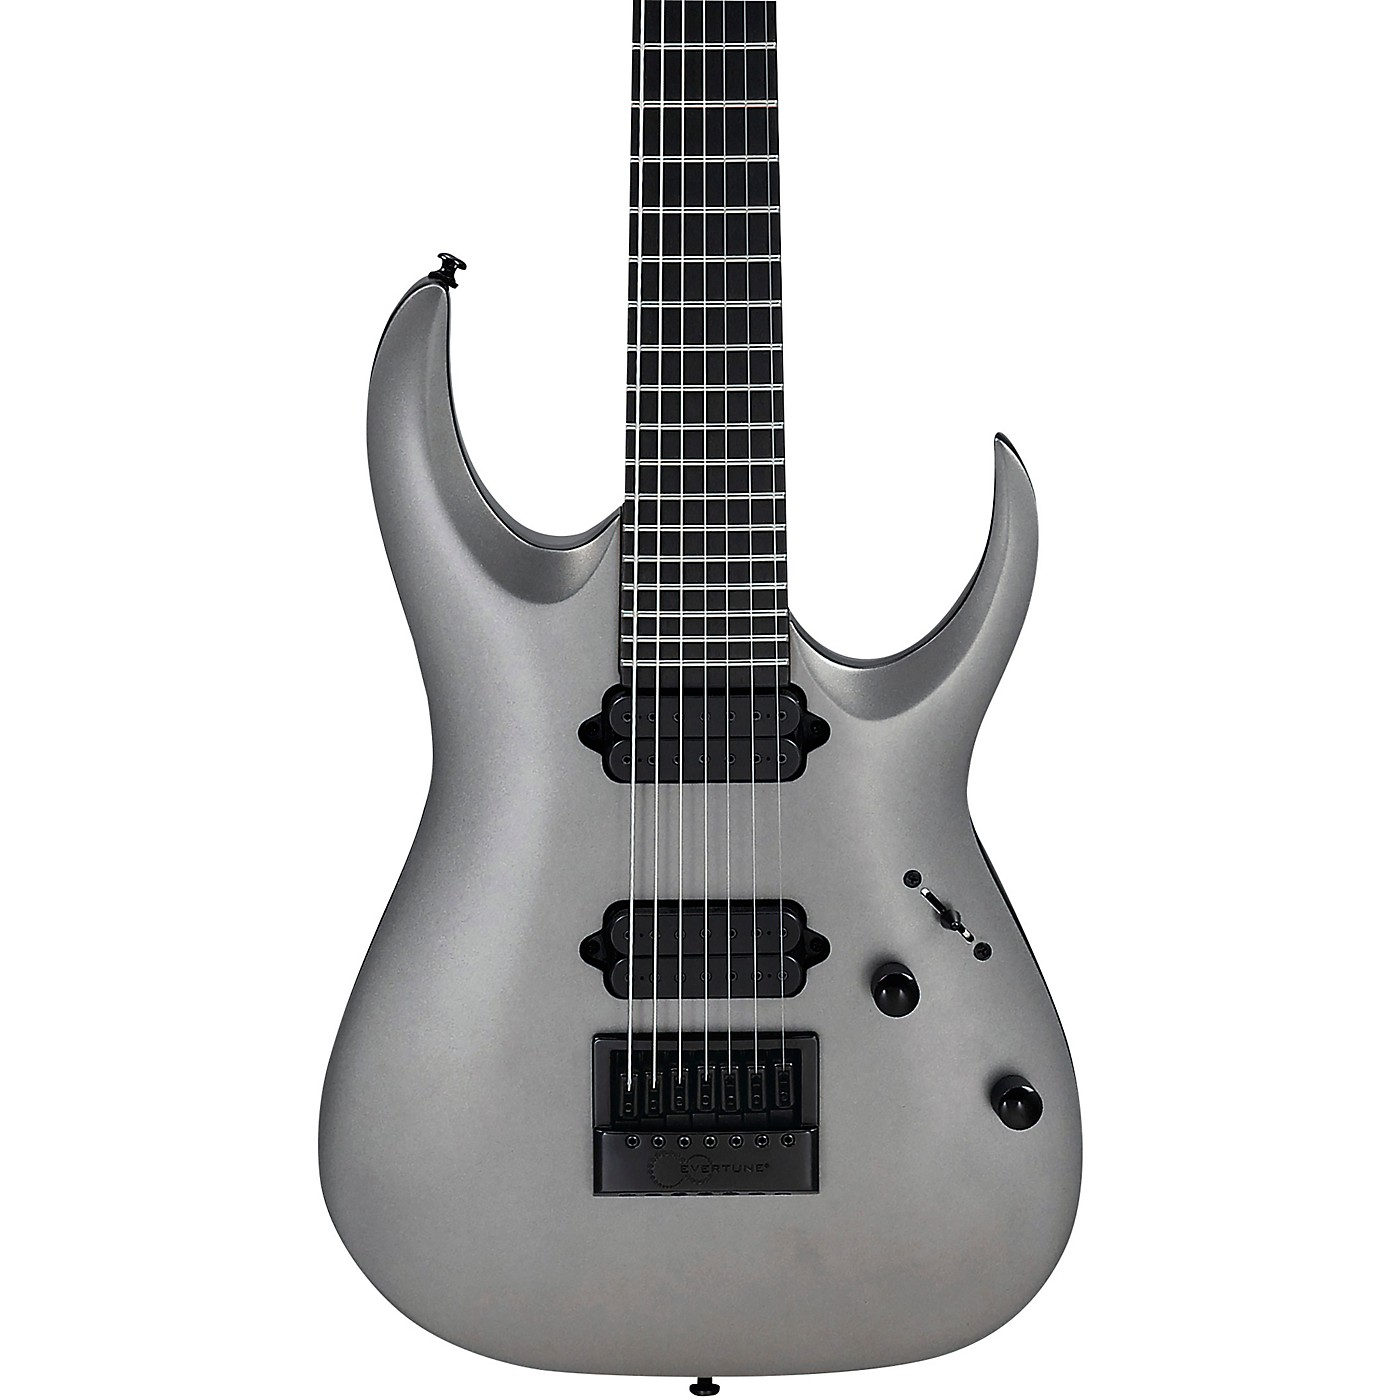 Ibanez Munky APEX30 Signature 7-String Electric Guitar thumbnail